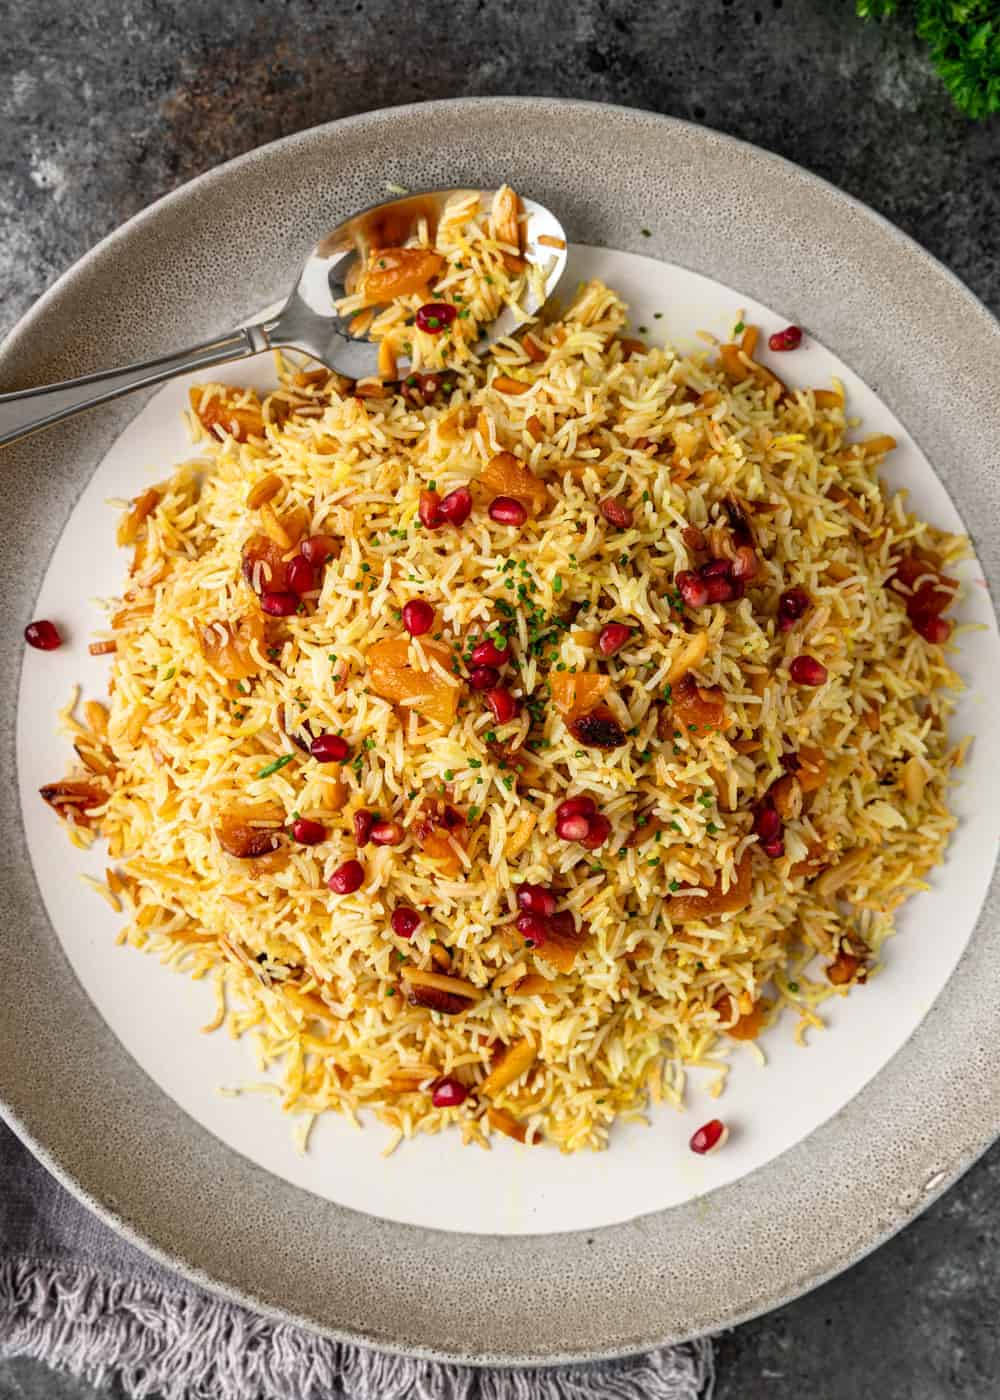 plate of Iranian yellow rice with apricots and pomegranate seeds